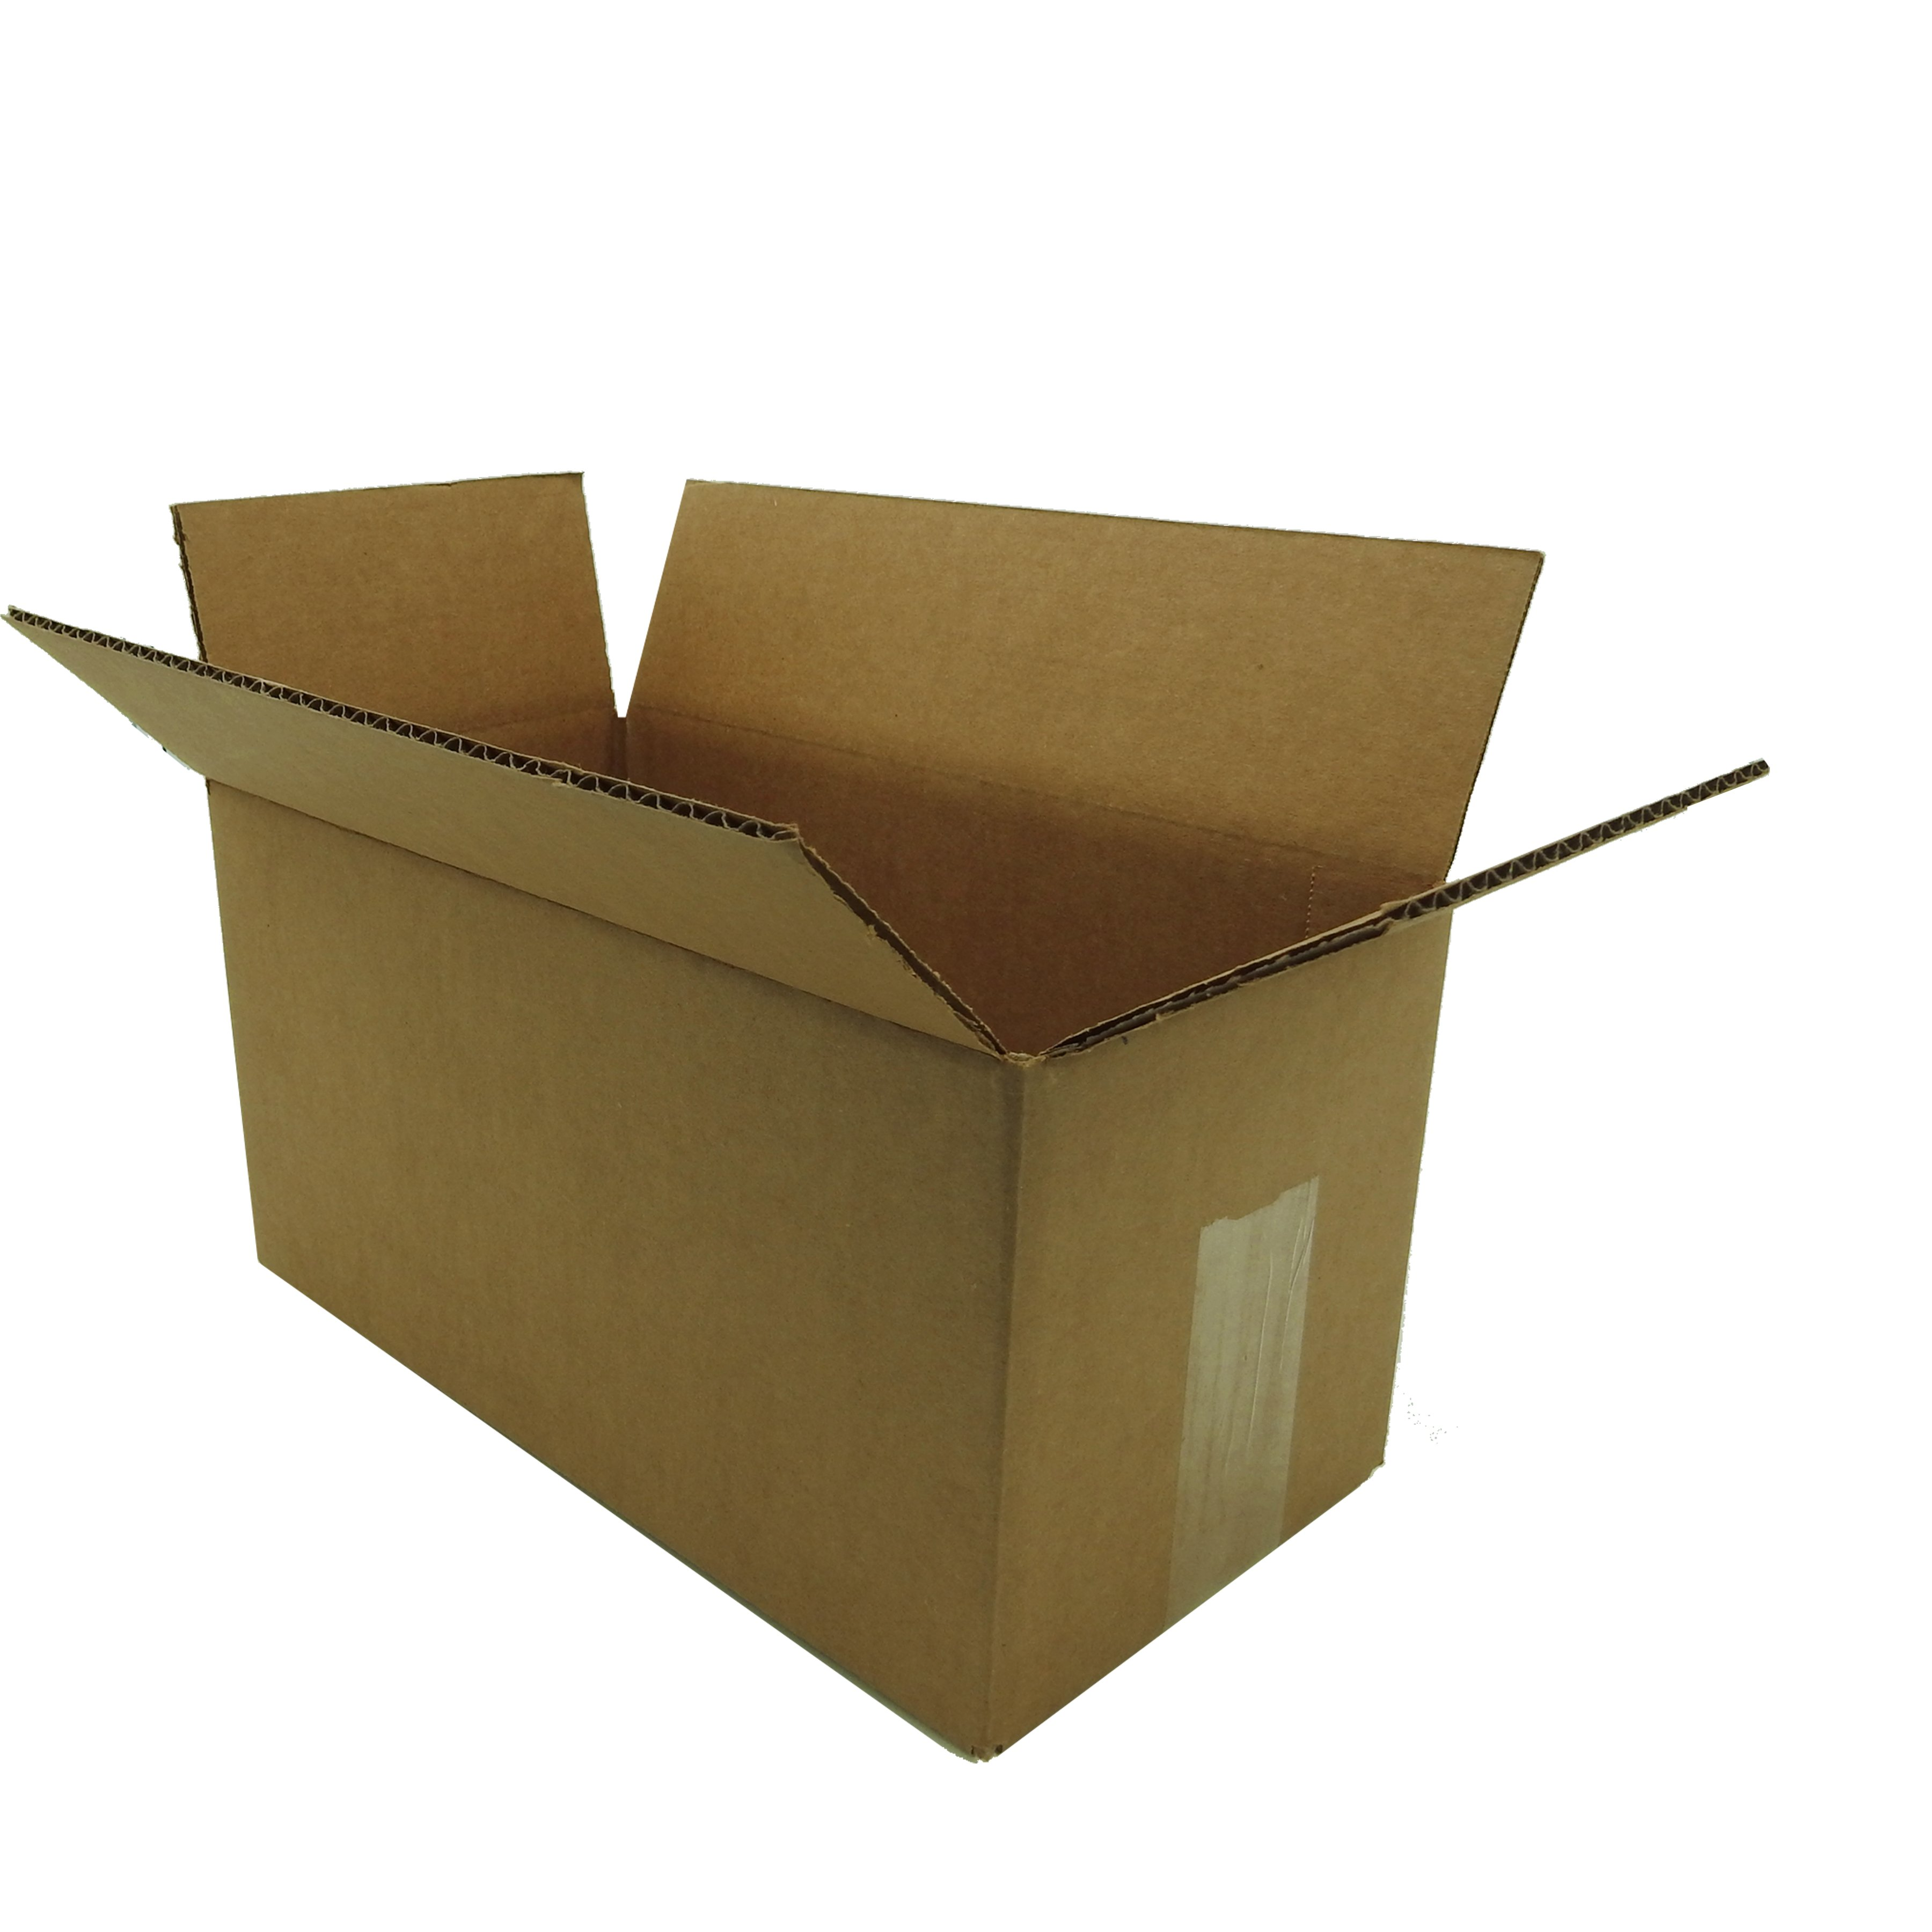 100 12x6x6 Corrugated Cardboard Shipping Mailing Packing Moving Boxes Box Carton